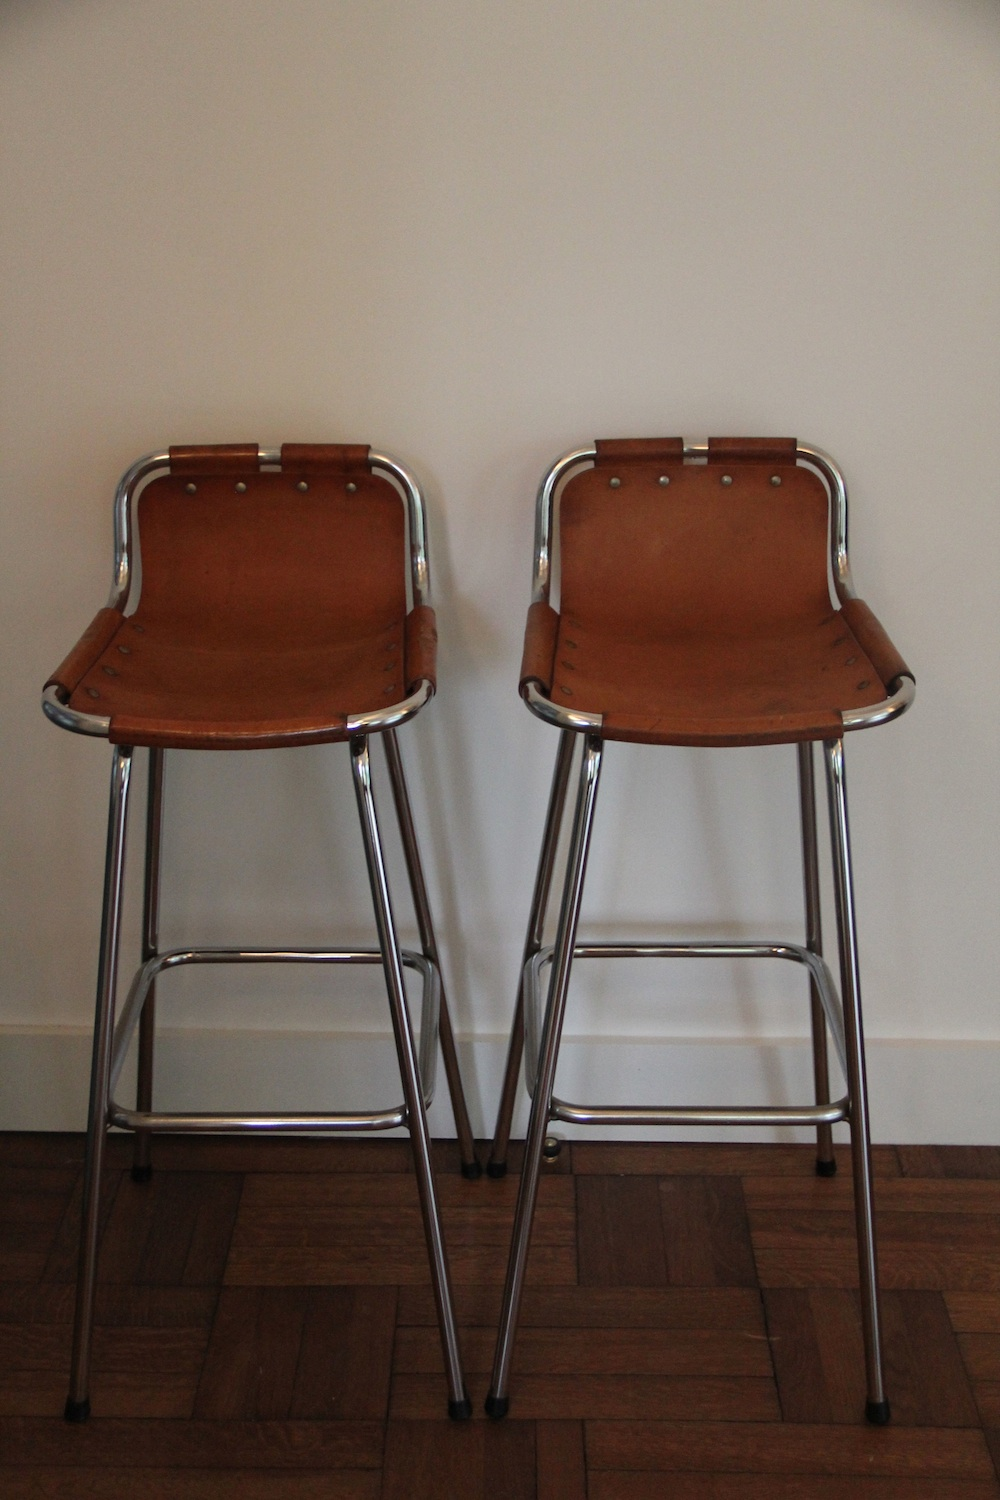 Charlotte perriand stools nicechairs - Etagere charlotte perriand ...